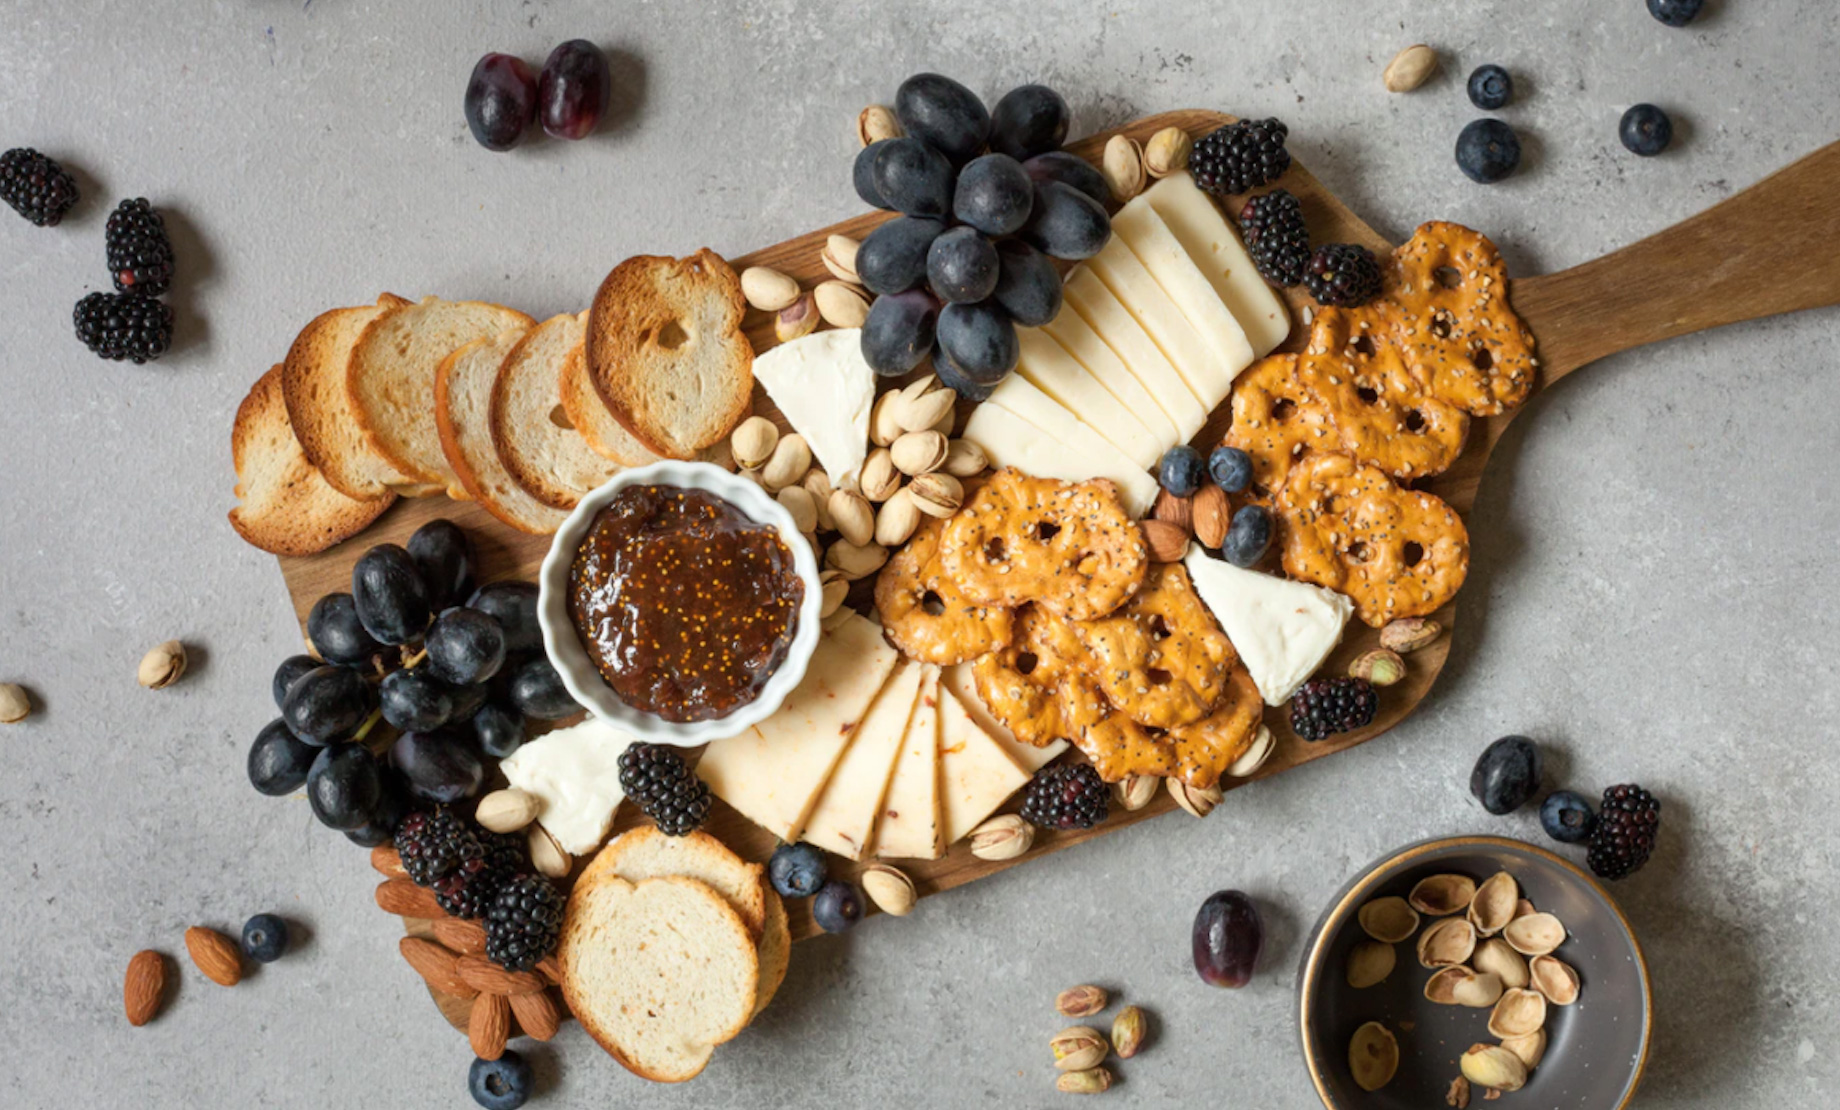 Cheese board with crackers Unsplash - Lindsay Moe